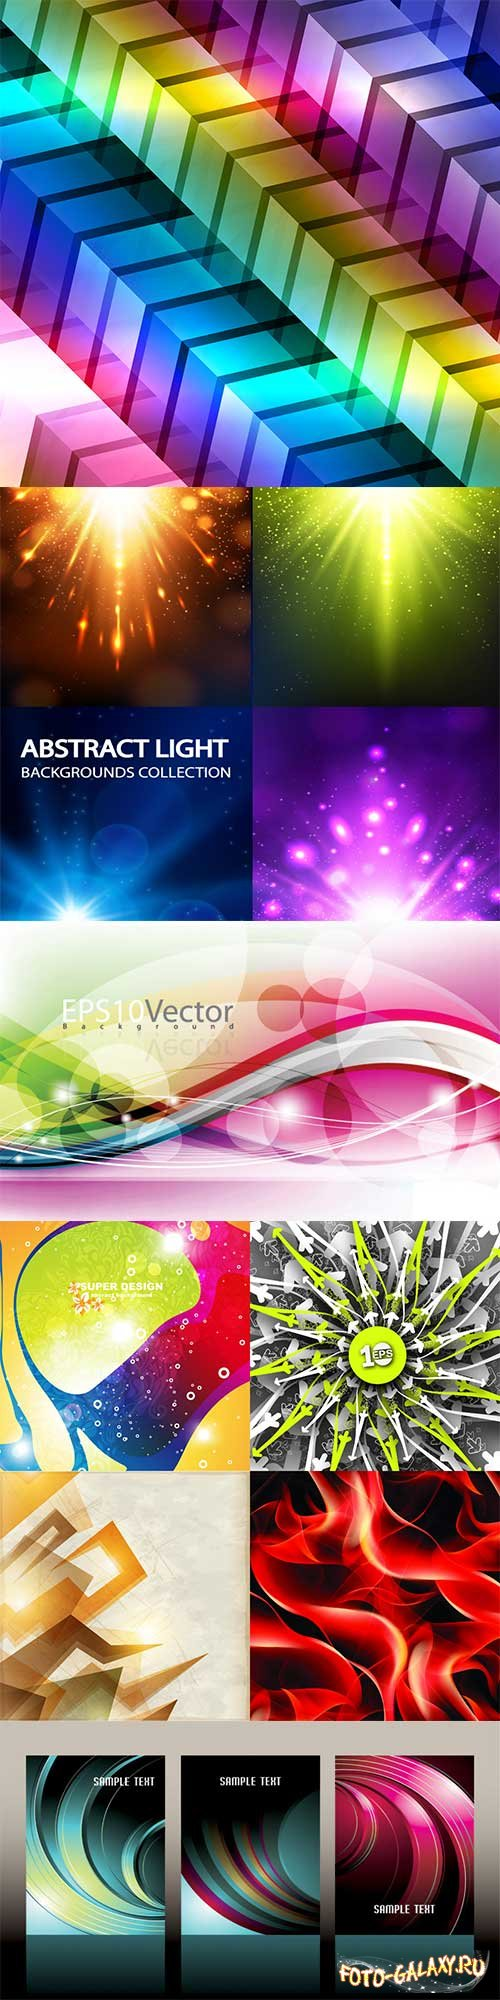 Bright colorful abstract backgrounds vector - 62